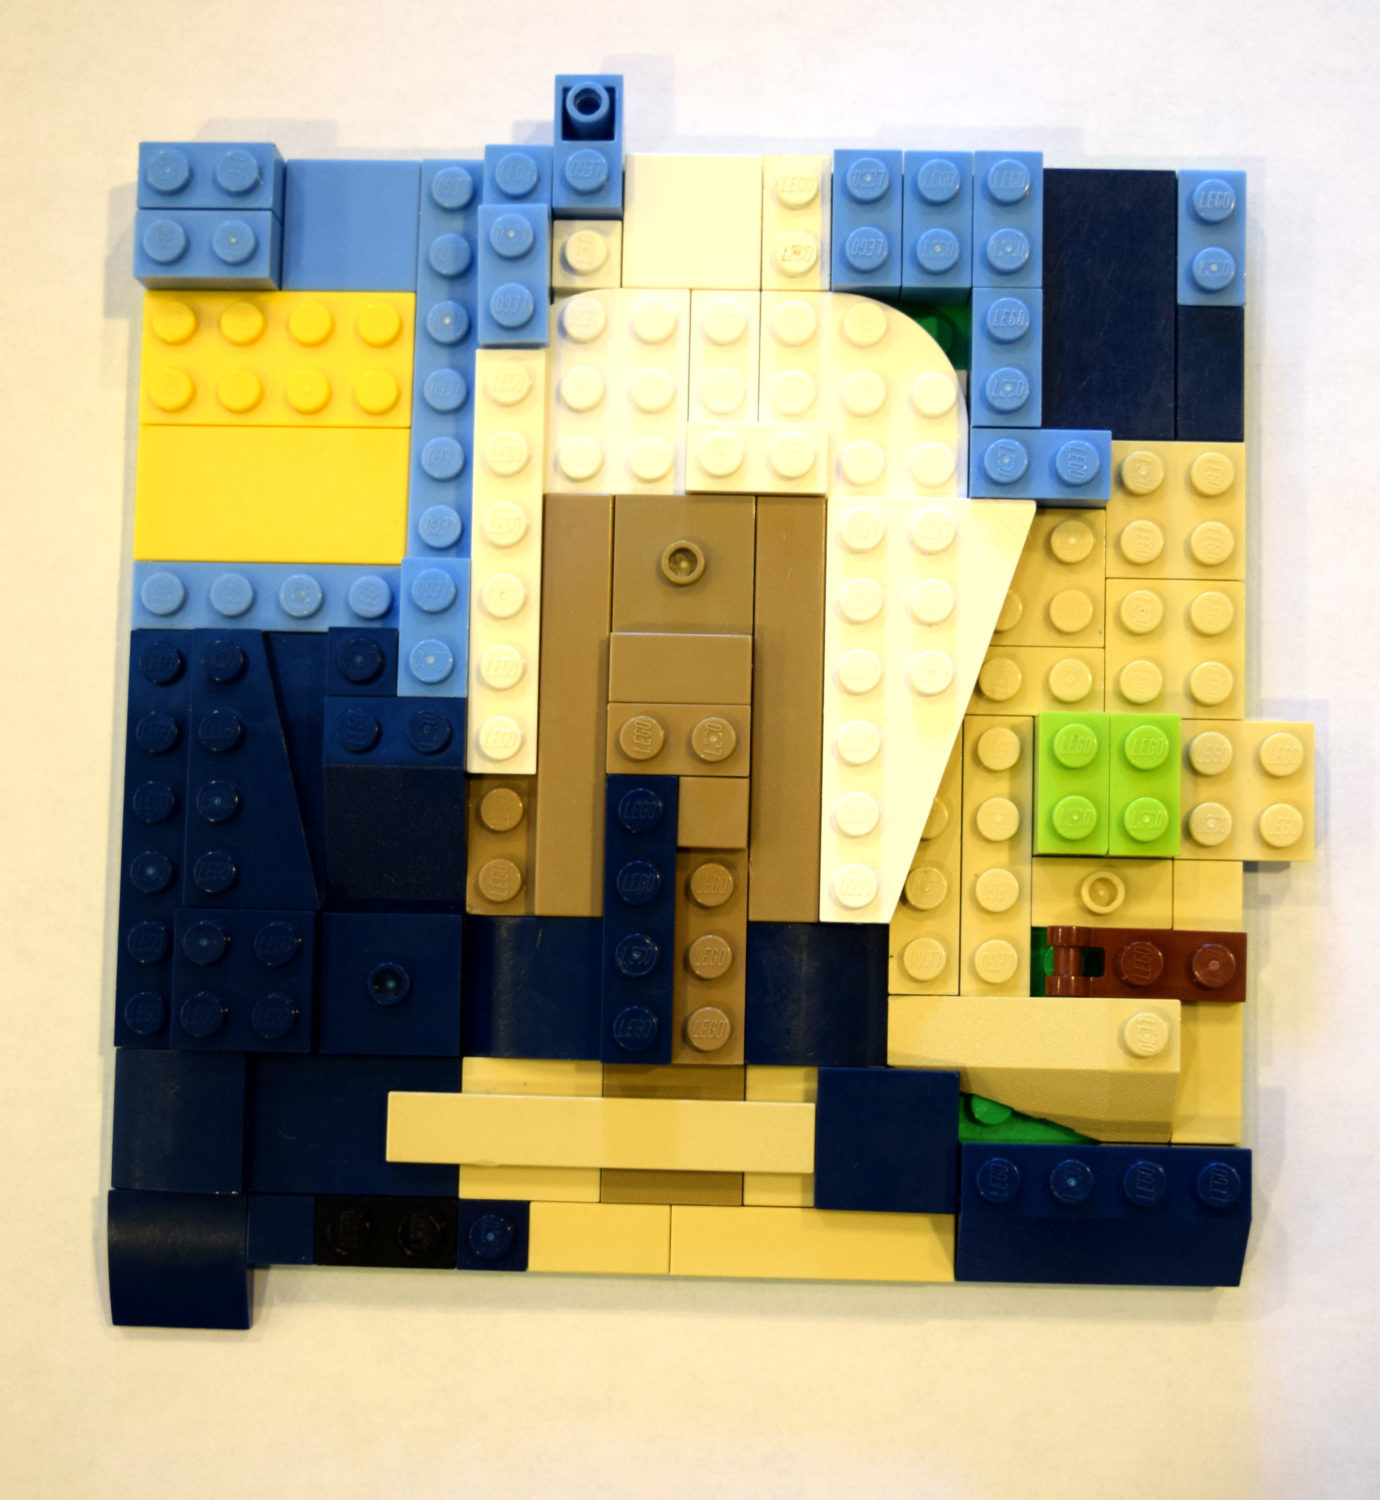 LEGO Challenge: Build a Baseplate Collage